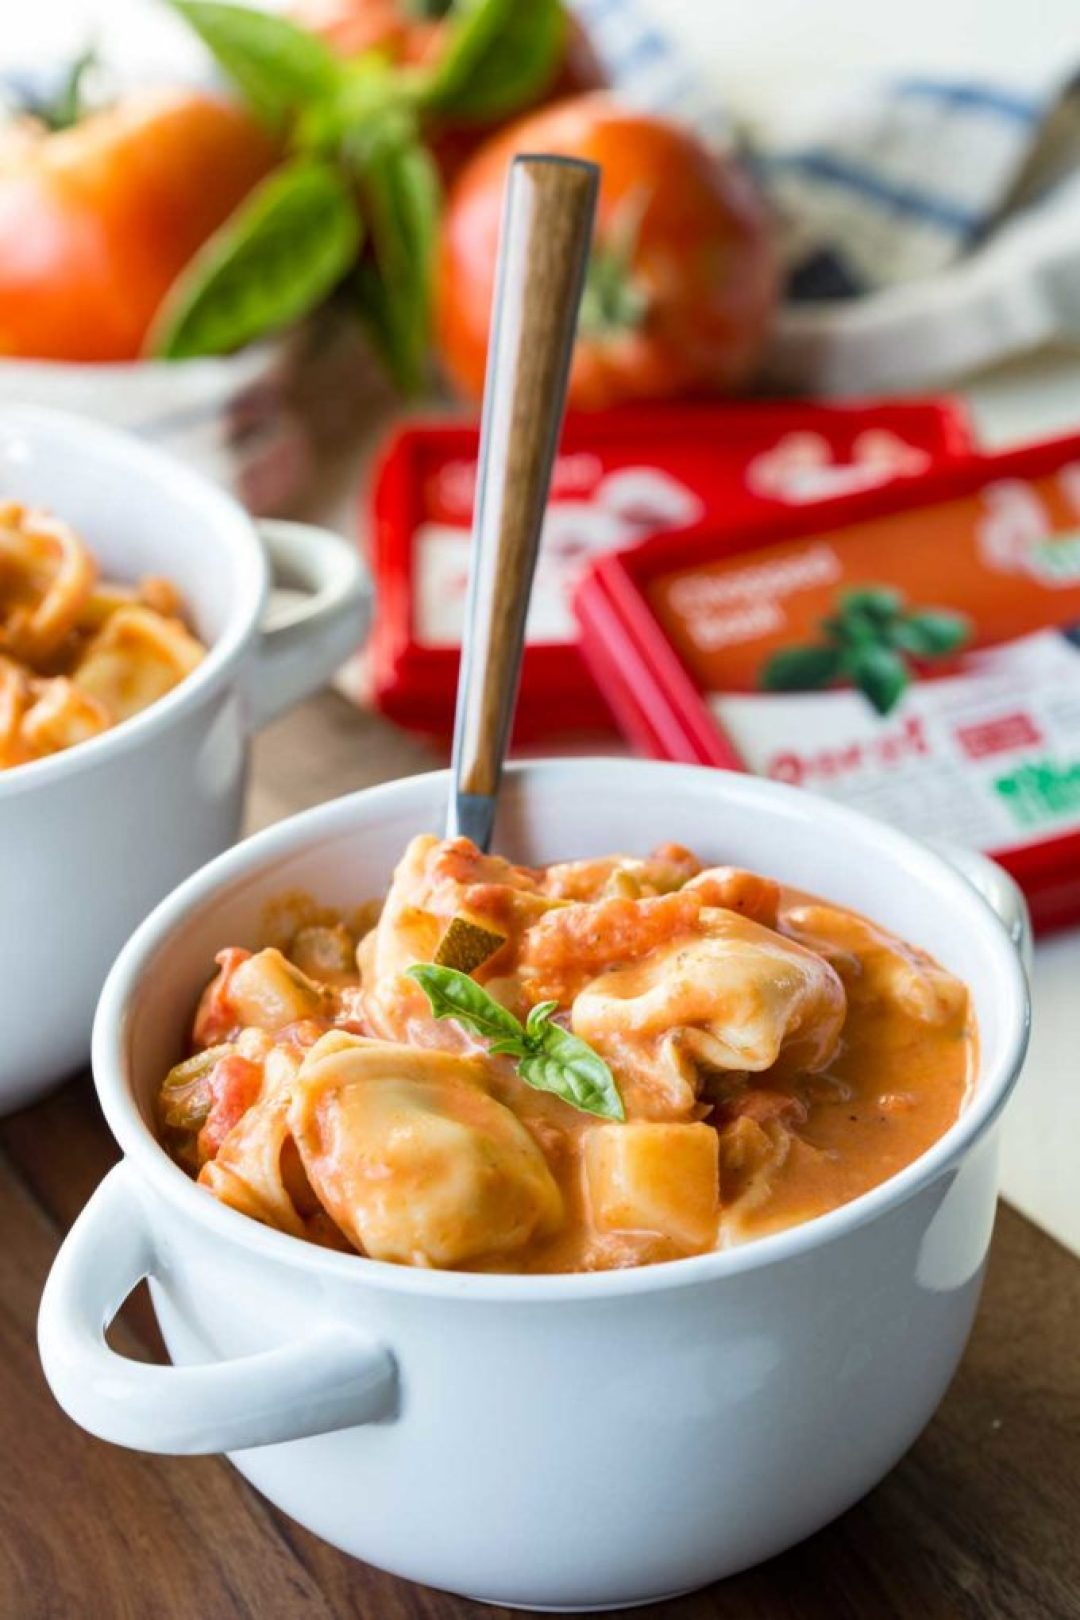 Creamy Tomato Basil Tortellini Soup is warm, comforting, and offers tantalizing flavors